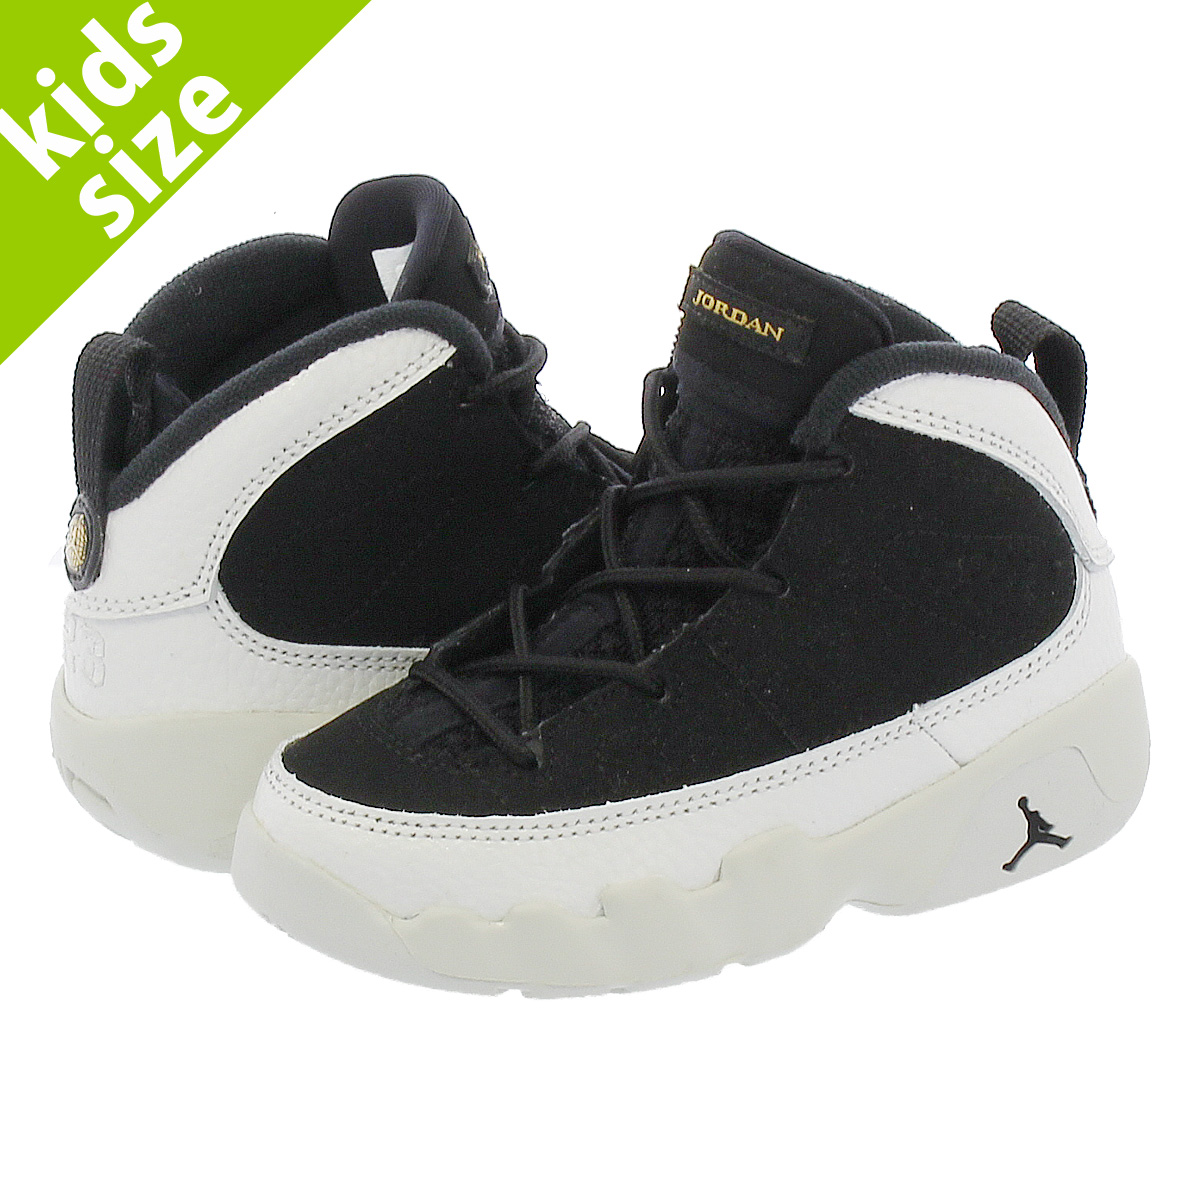 e644b4cfffe NIKE AIR JORDAN 9 RETRO TD Nike Air Jordan 9 nostalgic TD BLACK/SUMMIT  WHITE ...